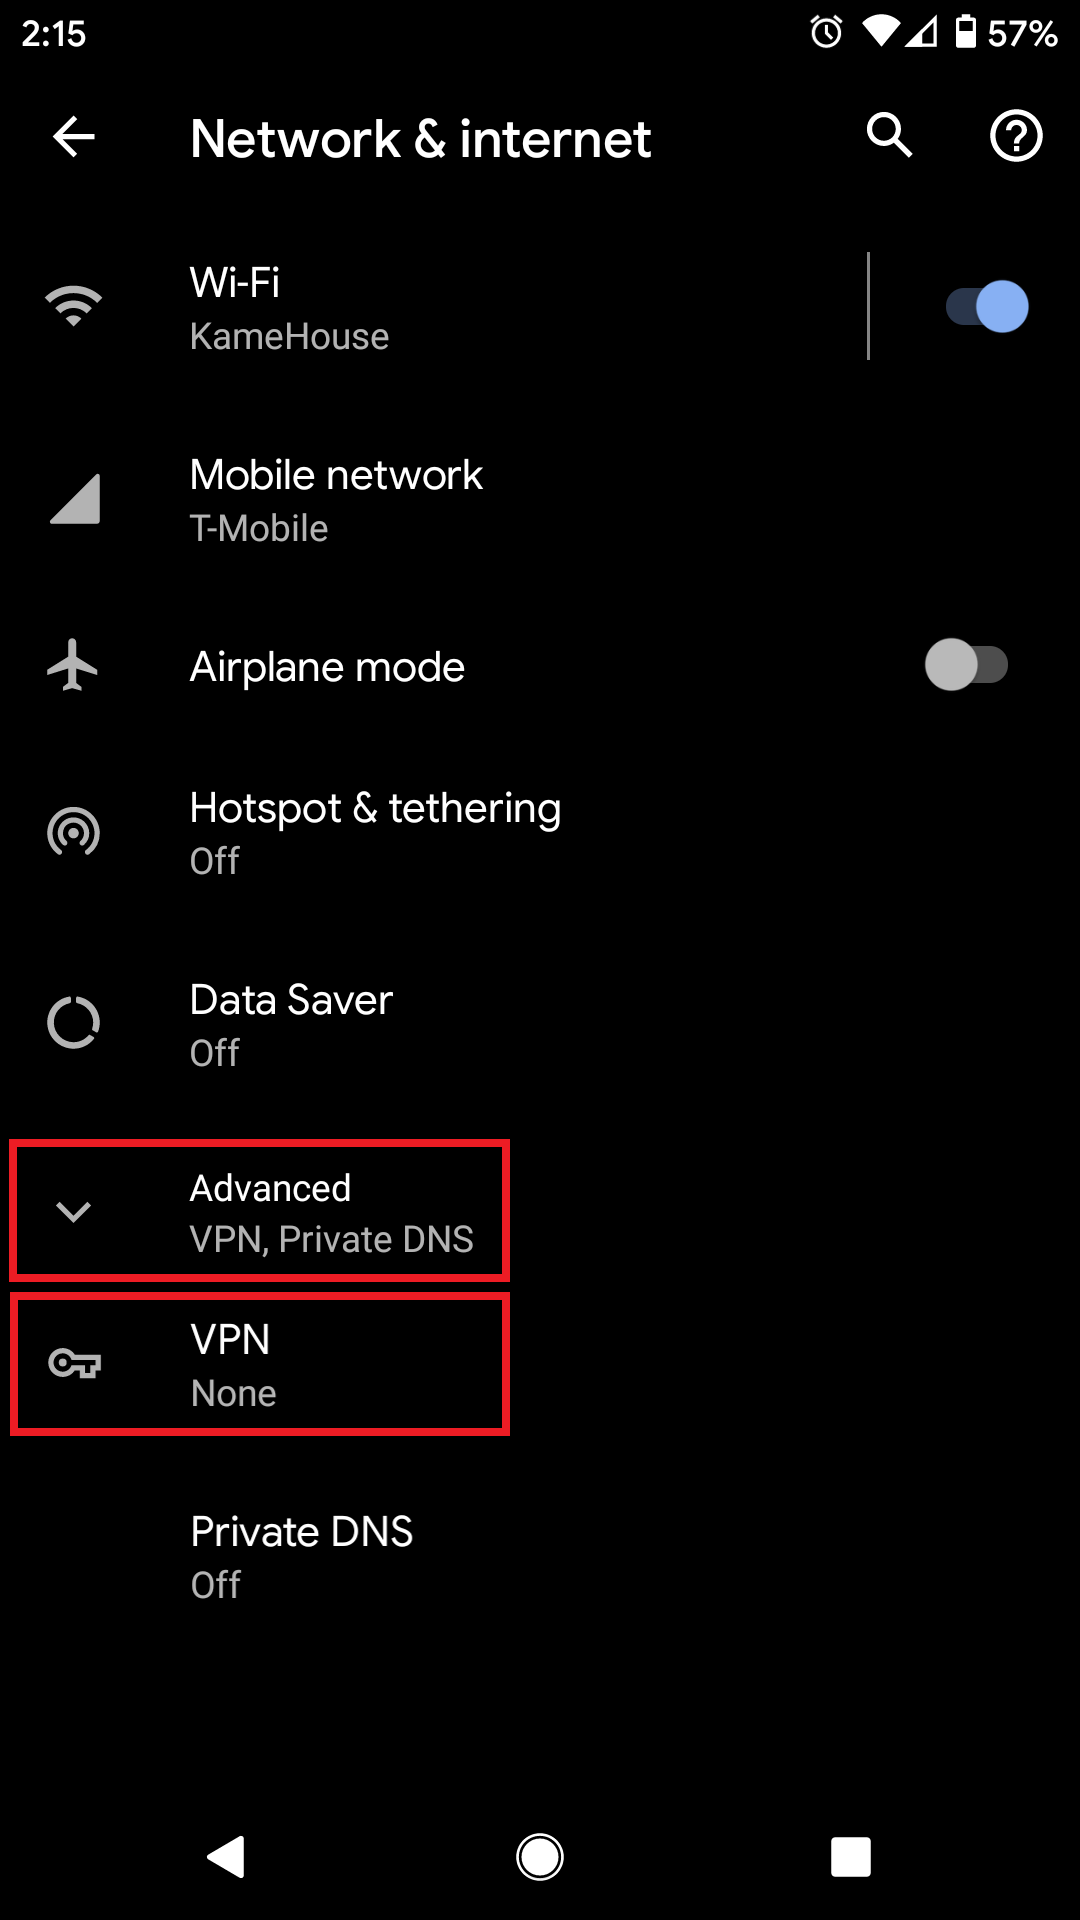 Network_and_Internet _-_ Advanced_Expanded _-_ VPN_and_Private_DNS_Added _-_ Advanced_and_VPN_Selected.png